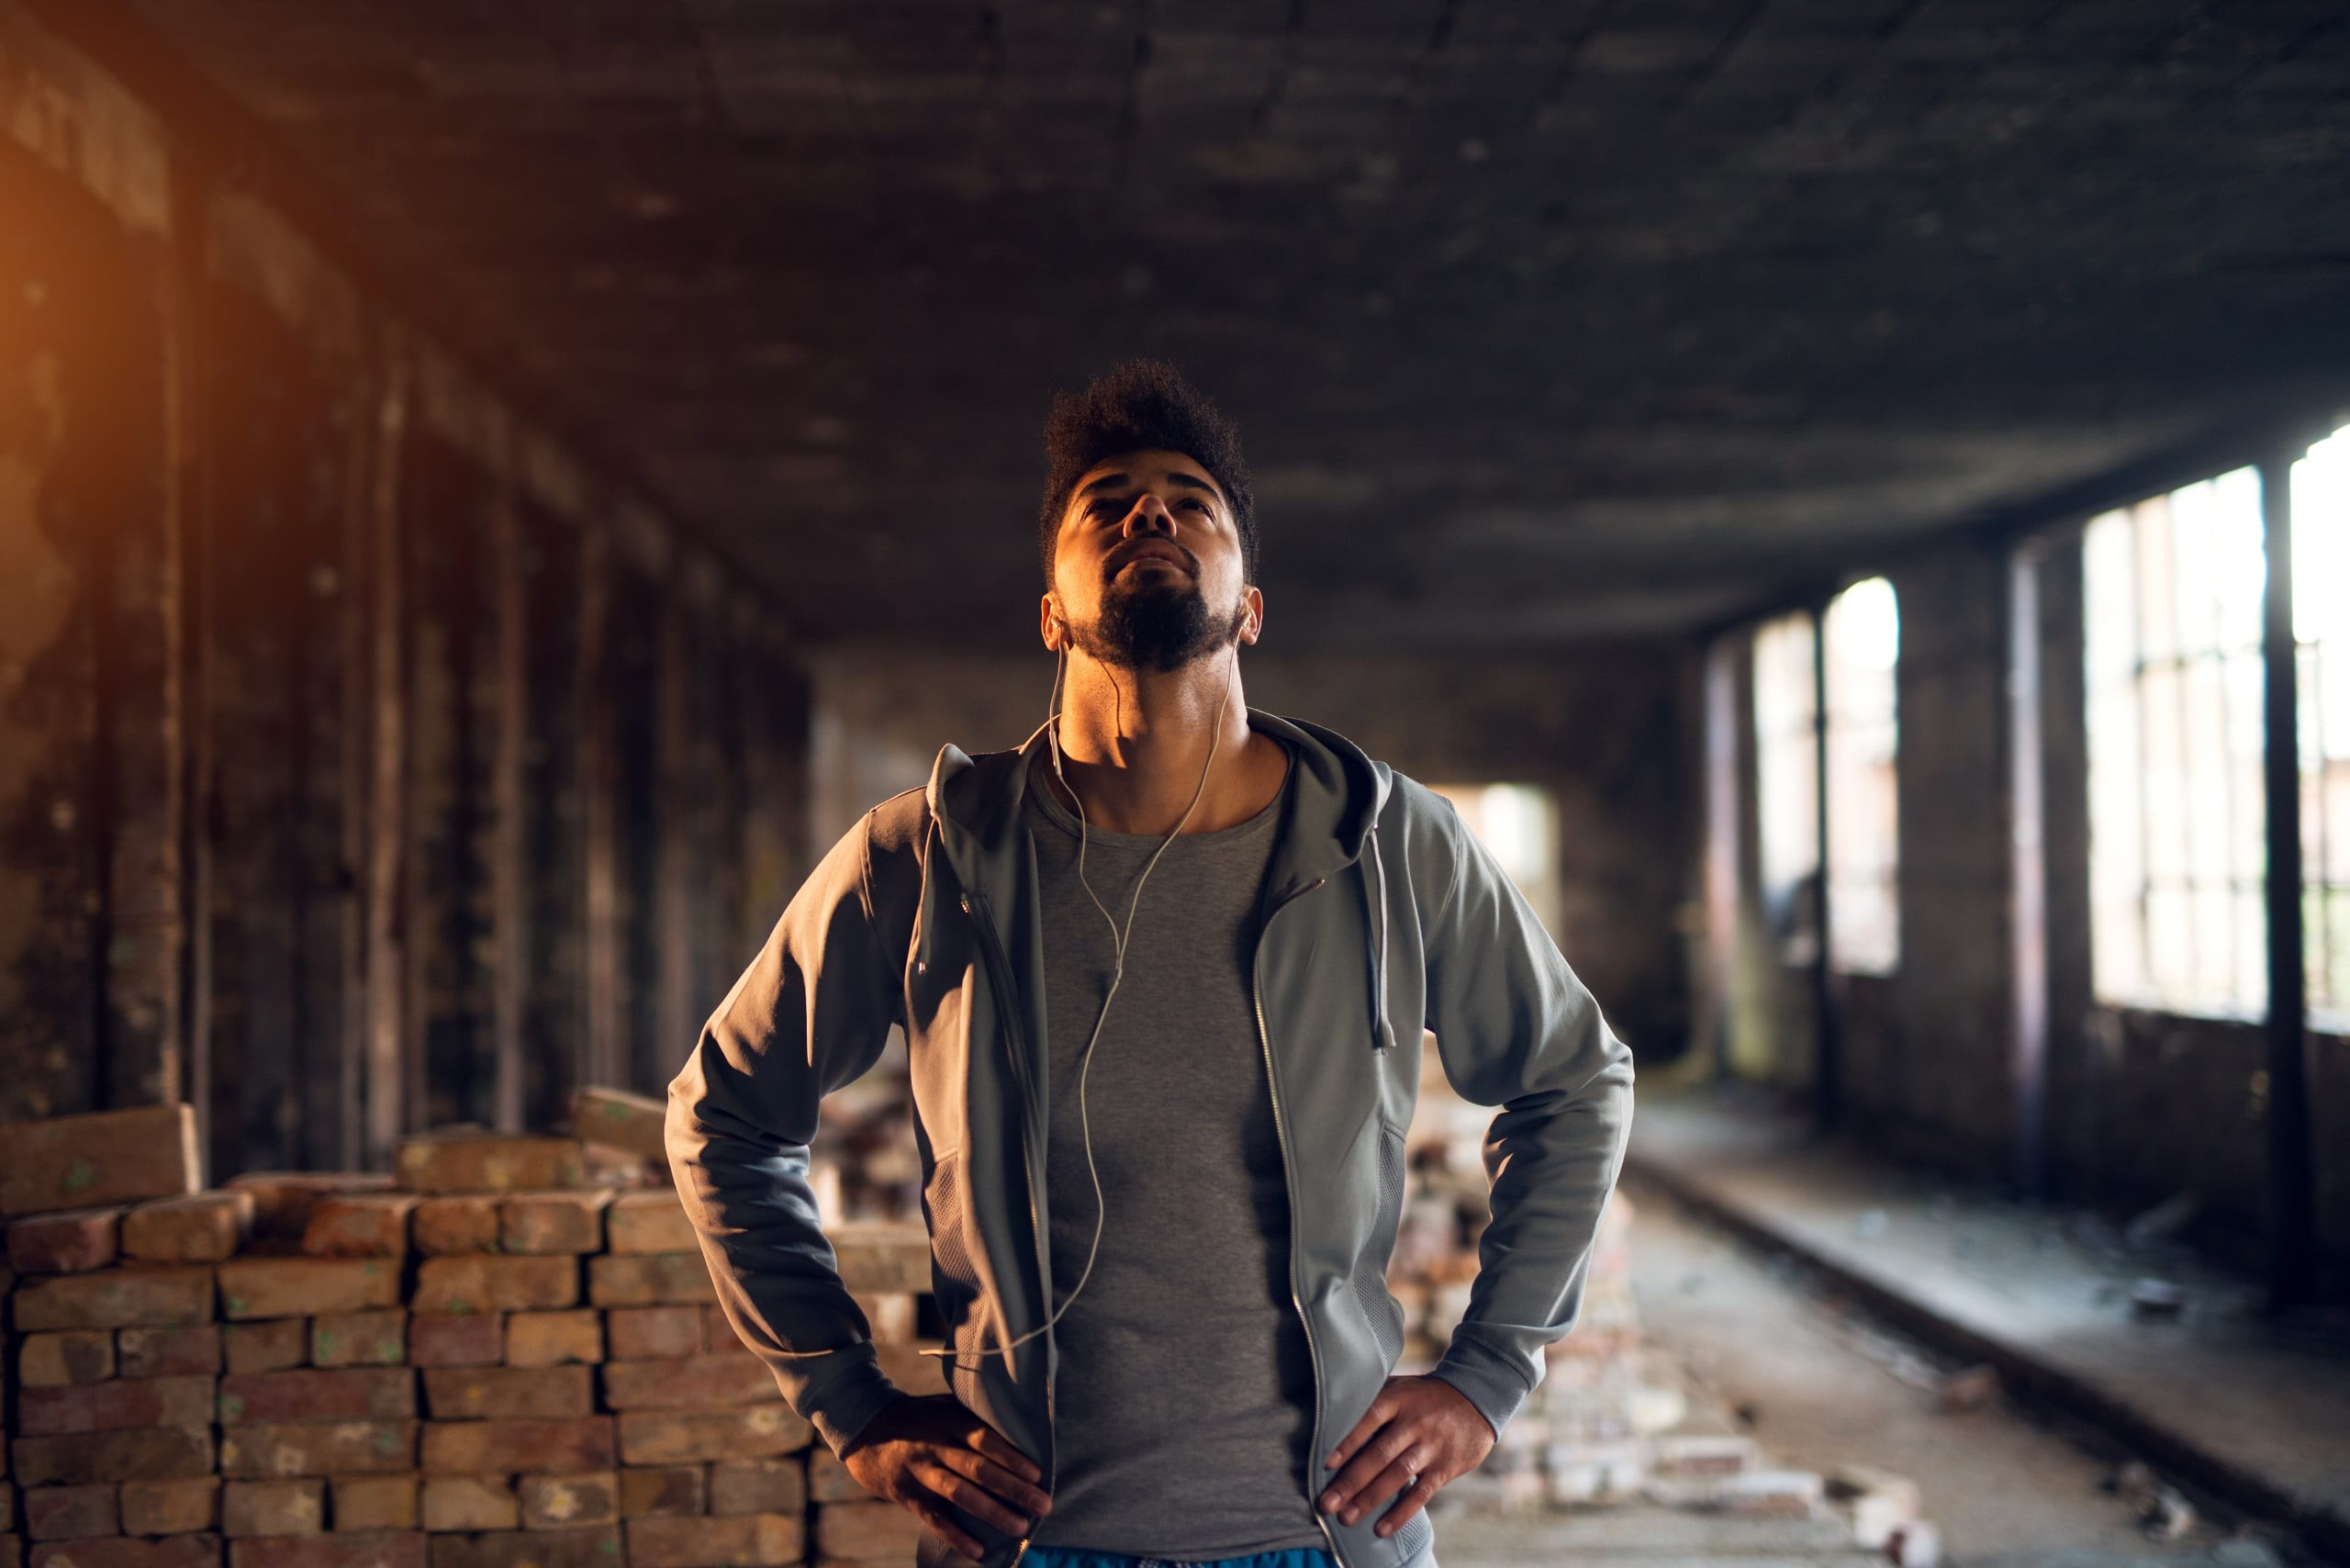 Bearded man in sportswear standing in abandon place with earphones and looking up.